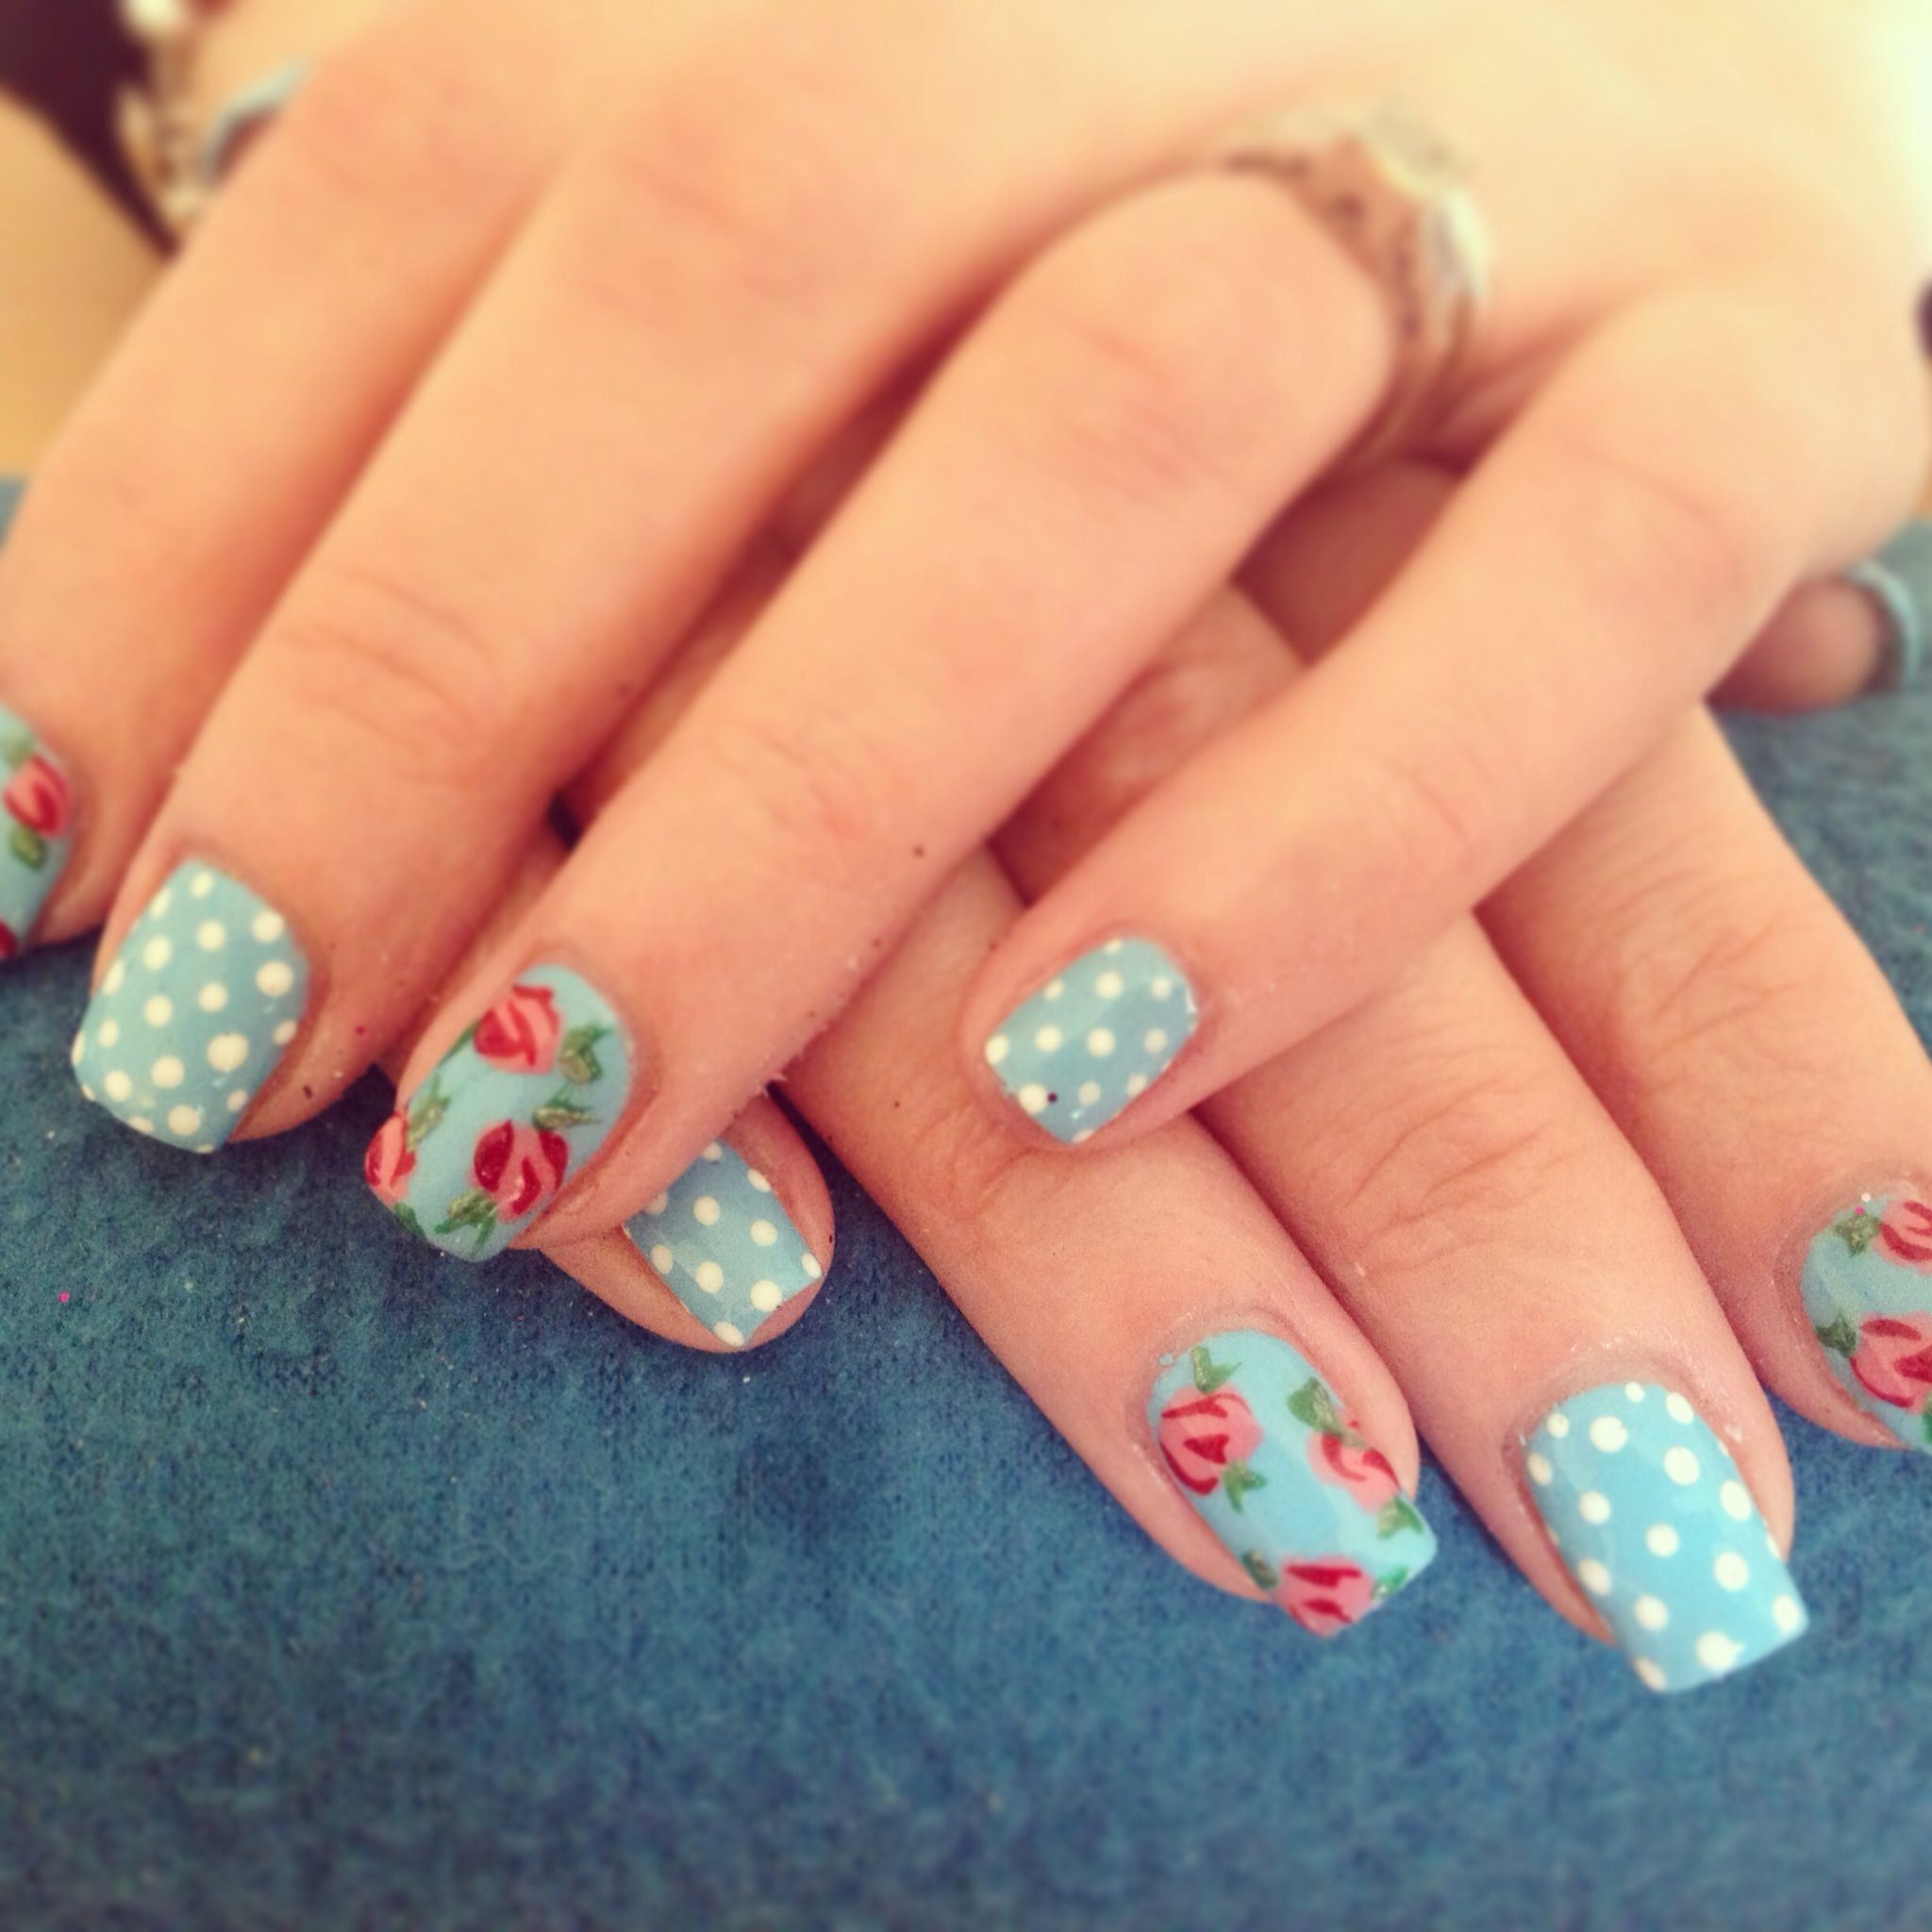 Nail Arts By Rozemist Cath Kidston Vintage Inspired: Cath Kidston Nail Art. All Free Handed Using Shellac